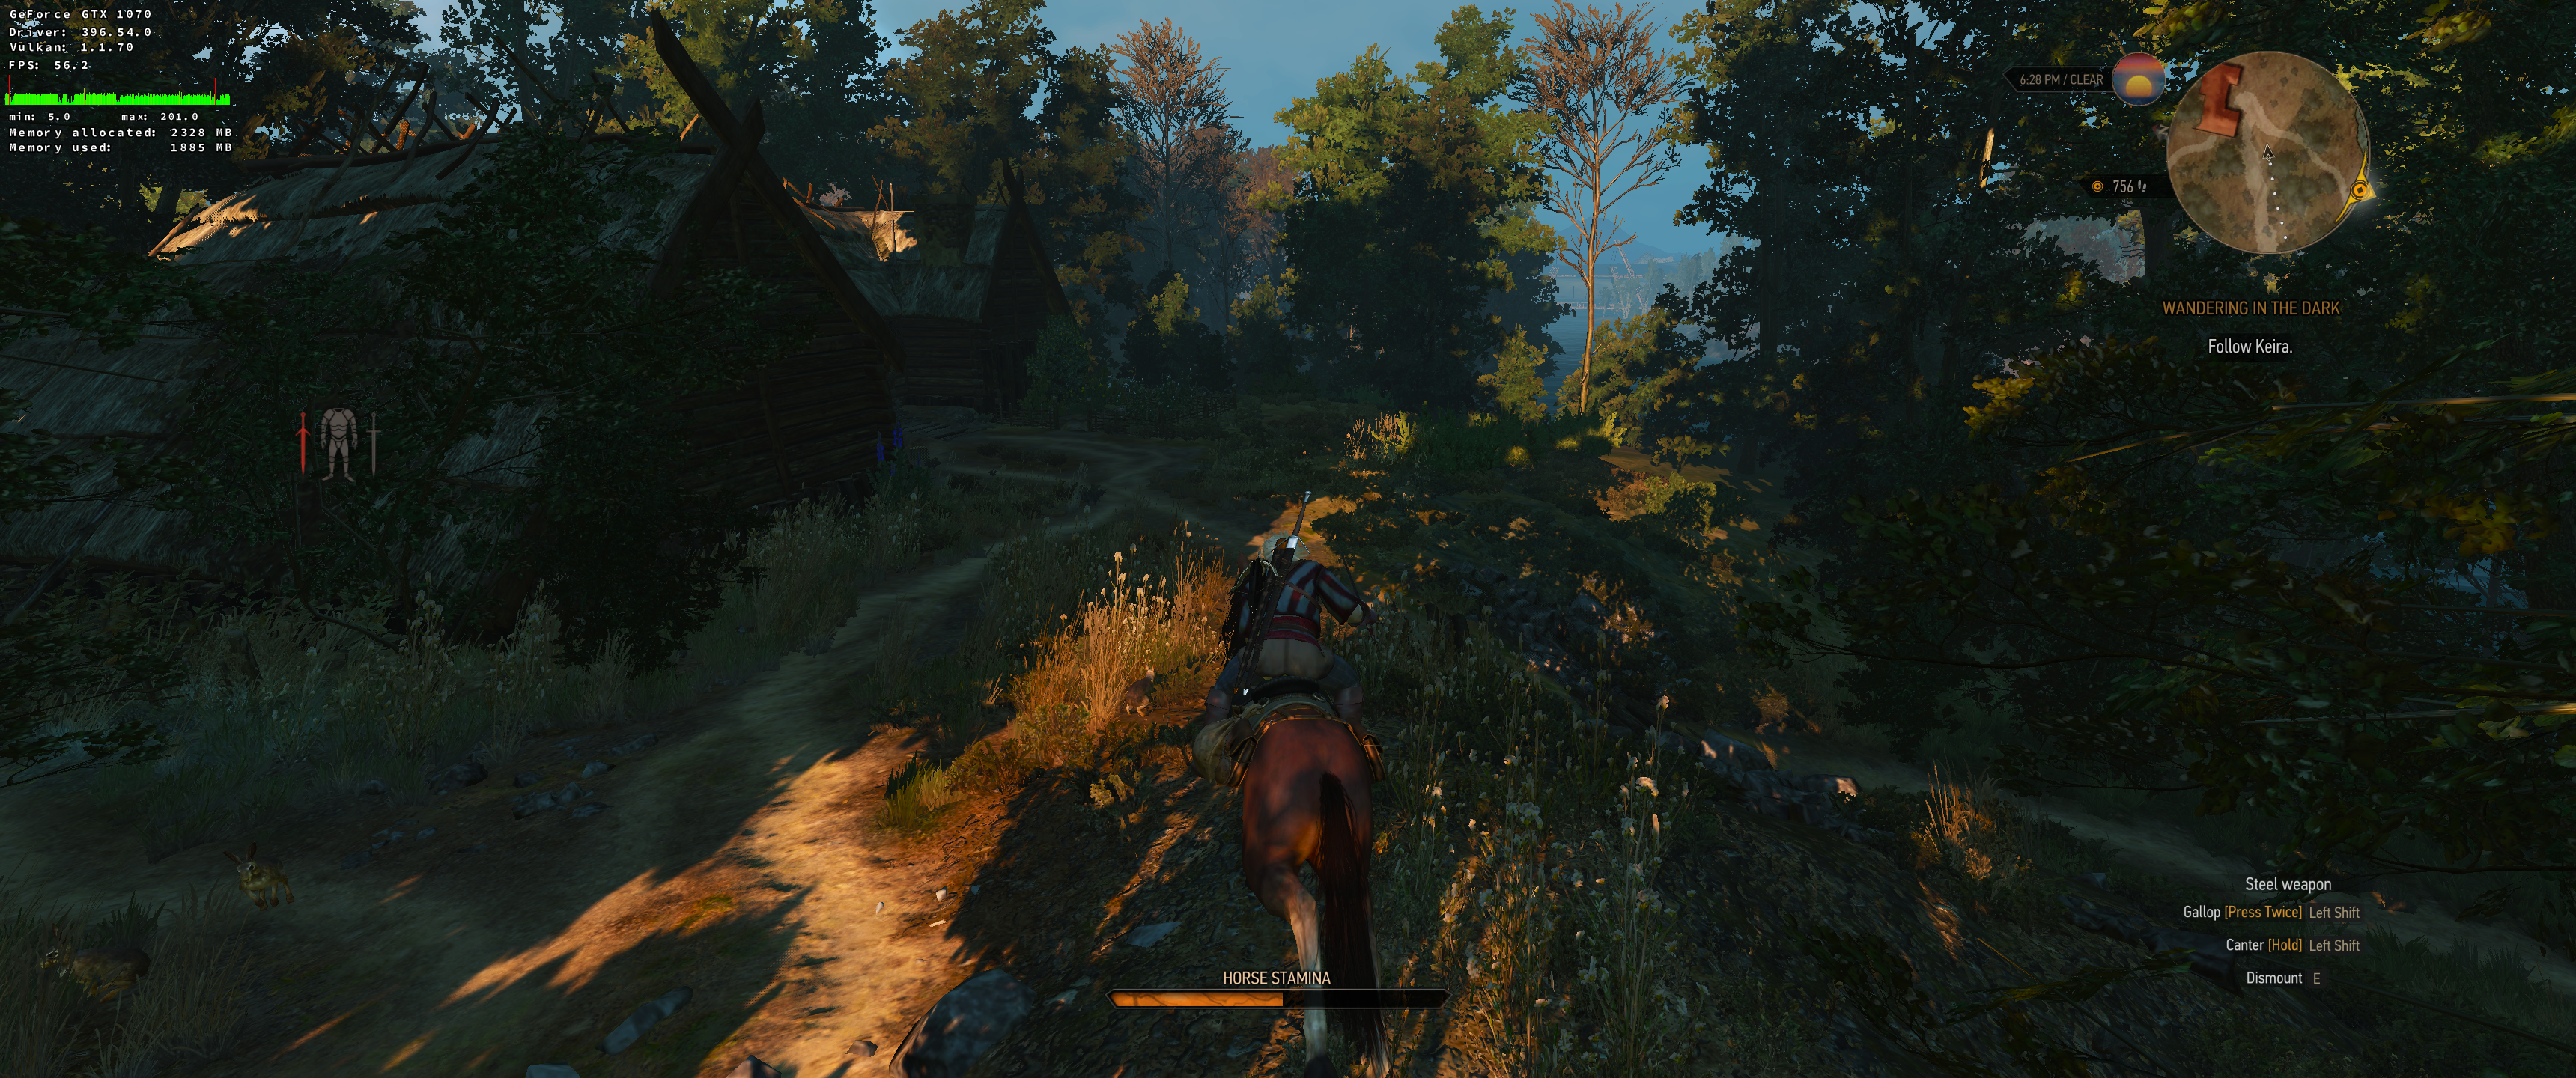 The Witcher 3 (292030) · Issue #607 · ValveSoftware/Proton · GitHub